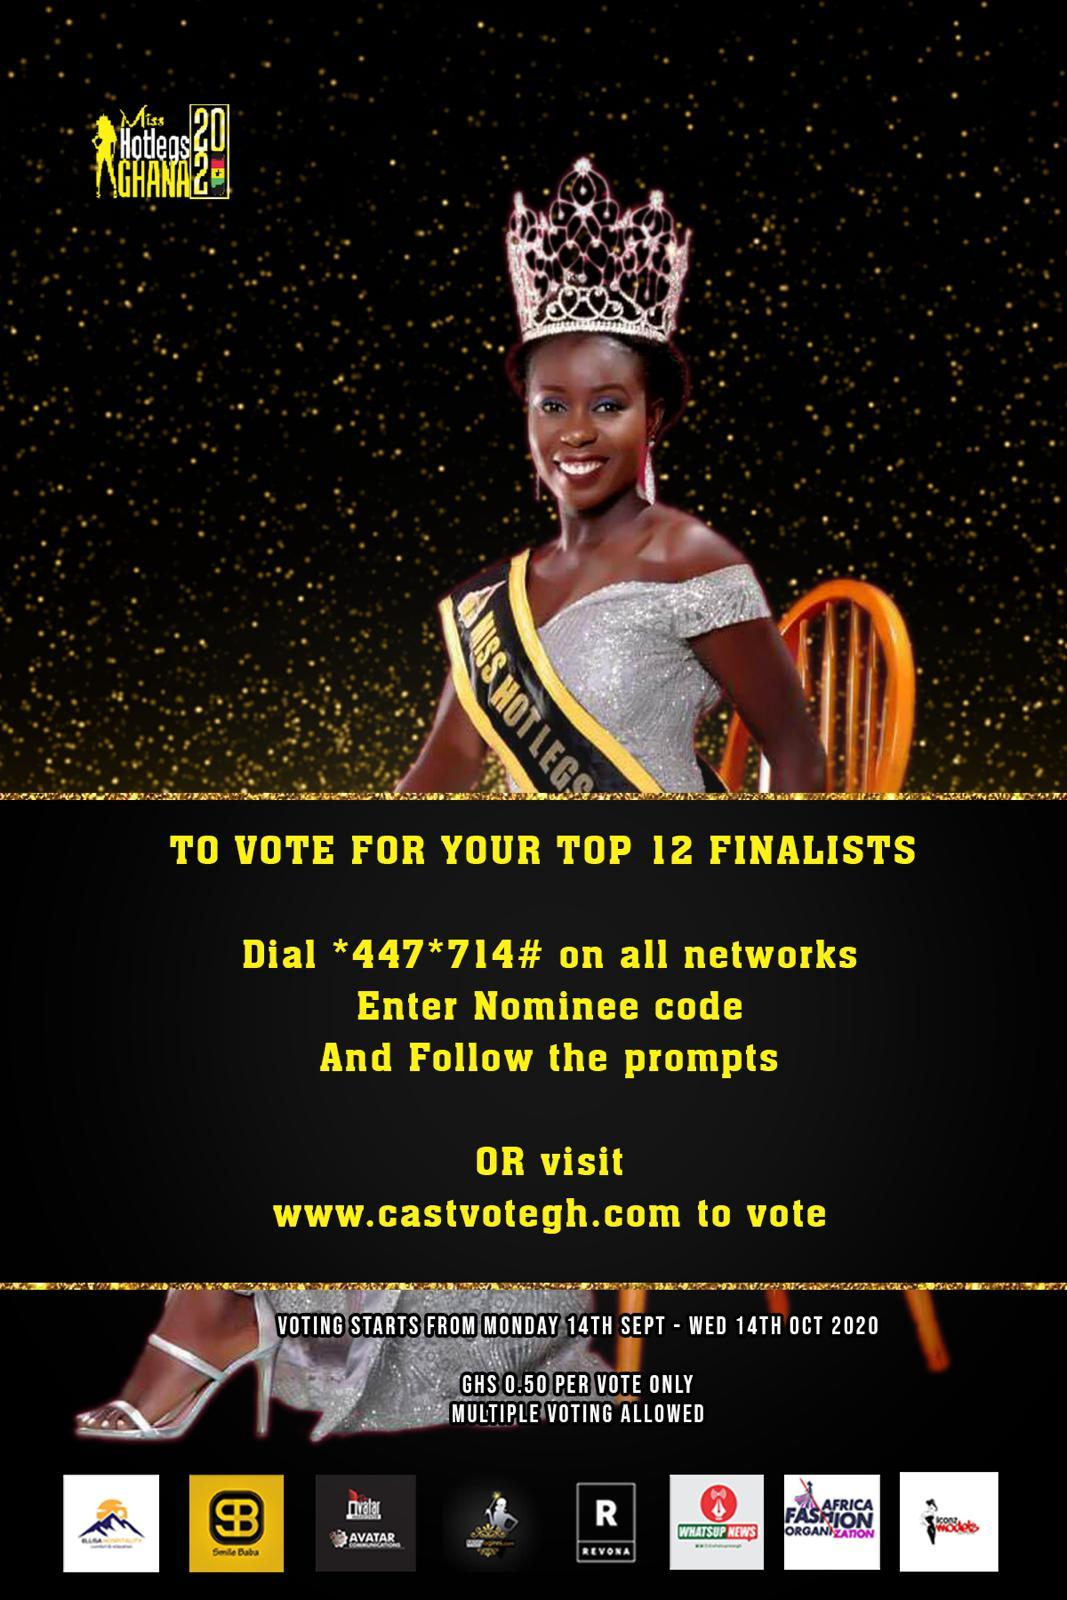 voting-for-the-top-12-finalists-of-miss-hotlegs-ghana-starts-from-monday-september-14-2020